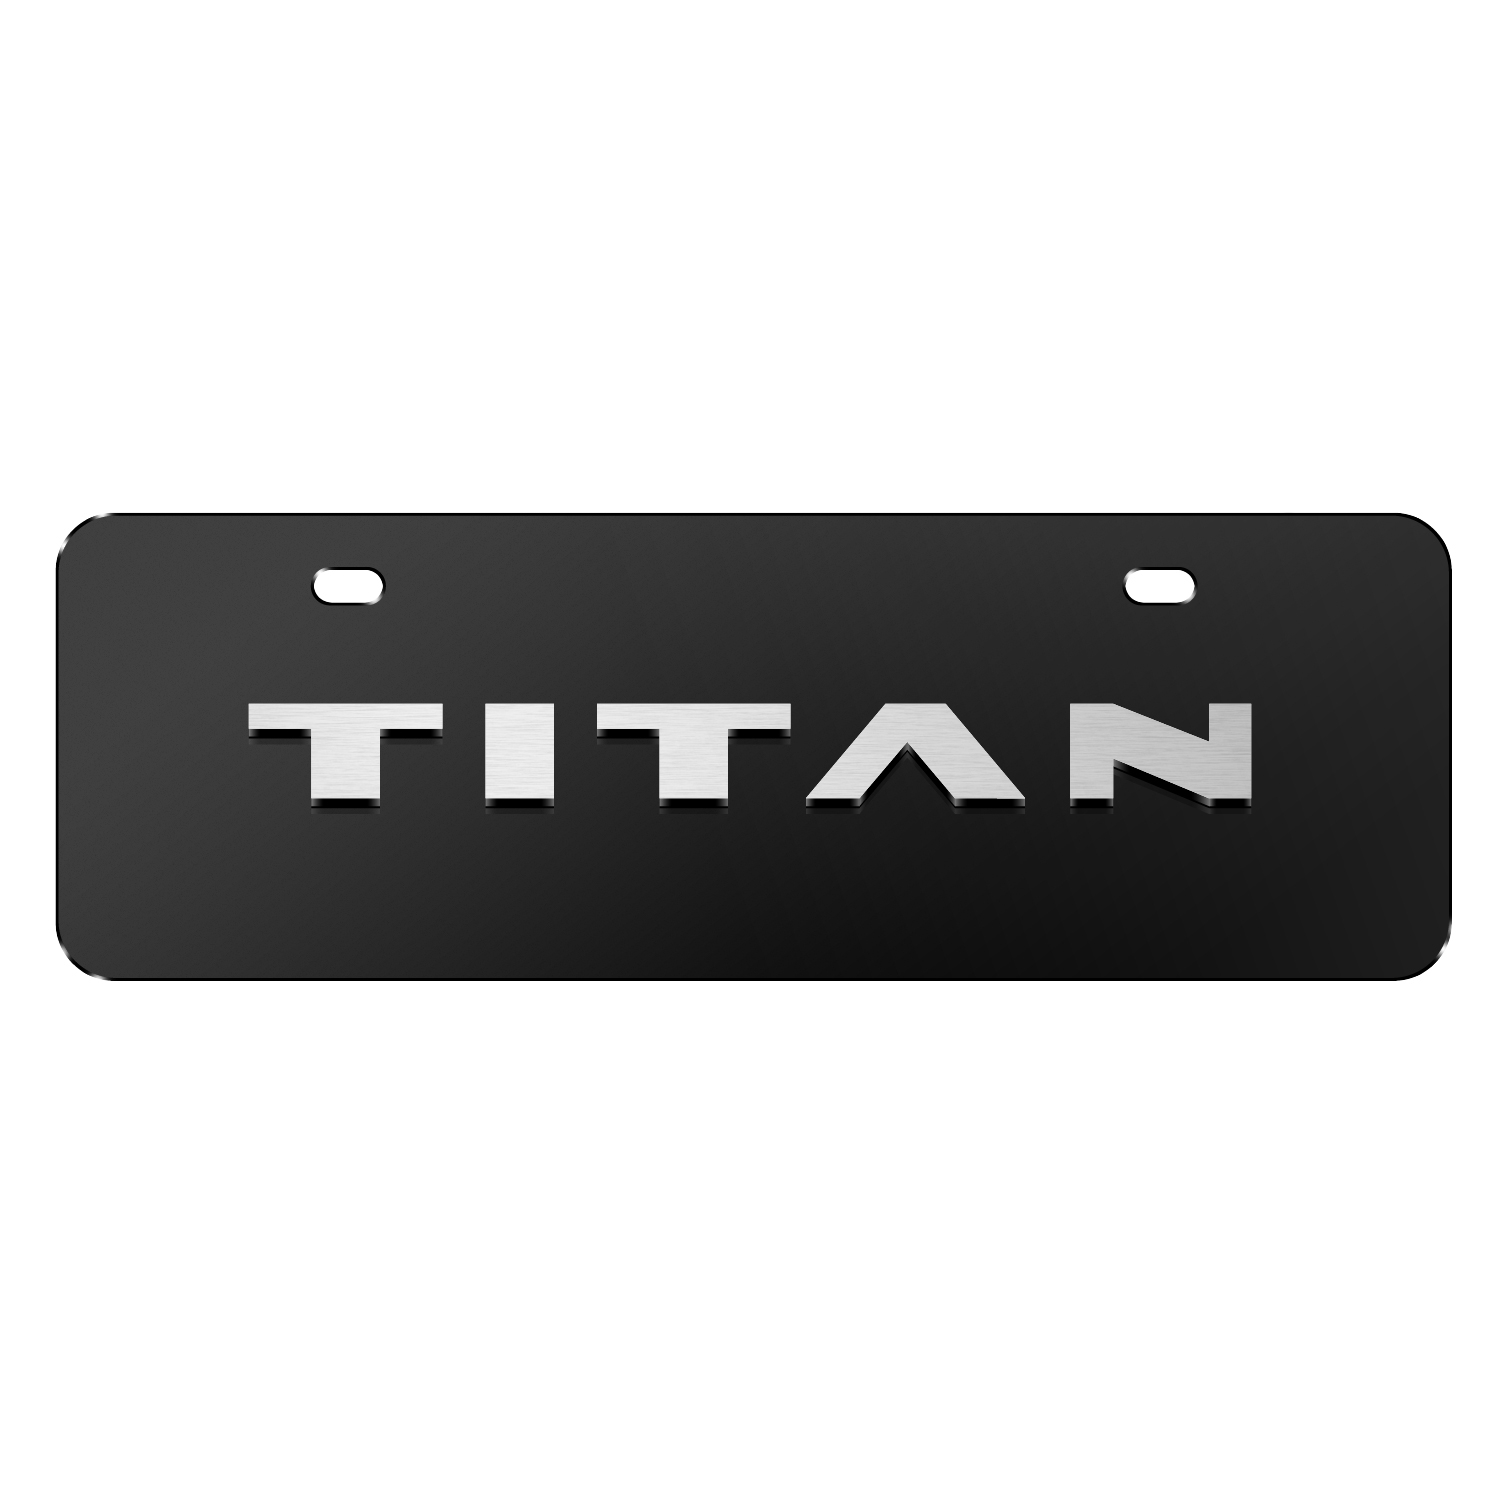 """Nissan Titan Name 3D Black 12""""x4"""" Half-Size Stainless Steel License Plate"""